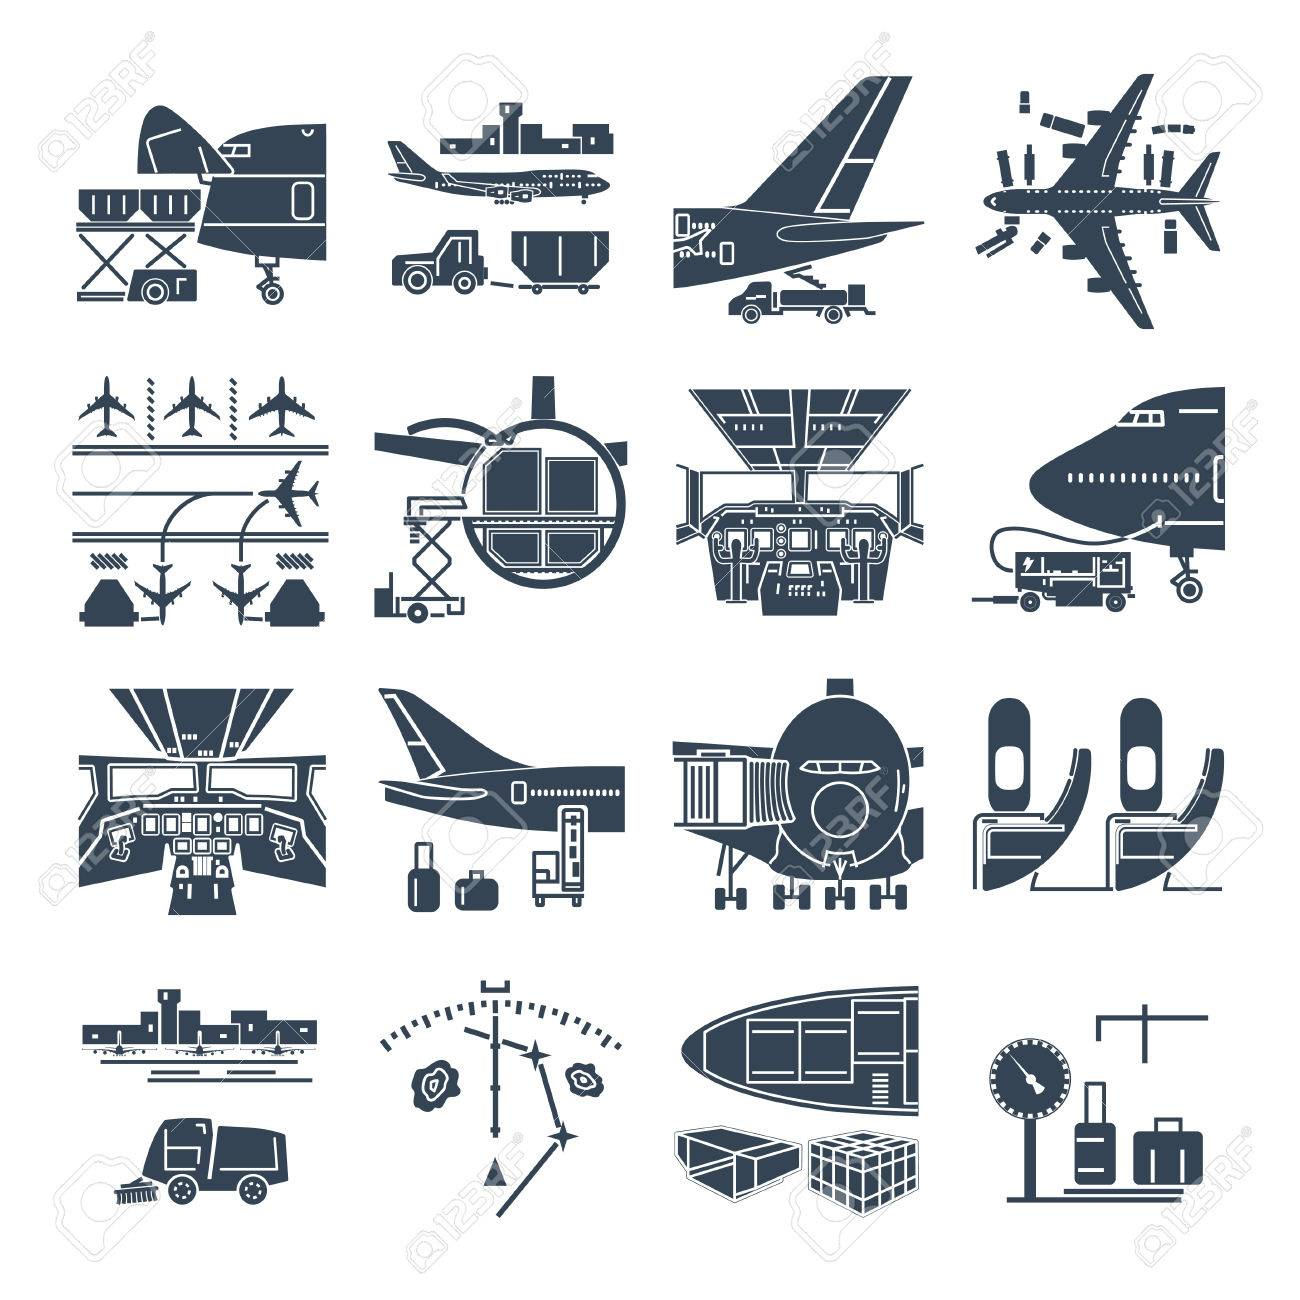 set of black icons airport and airplane, freight, cargo aircraft - 83097814